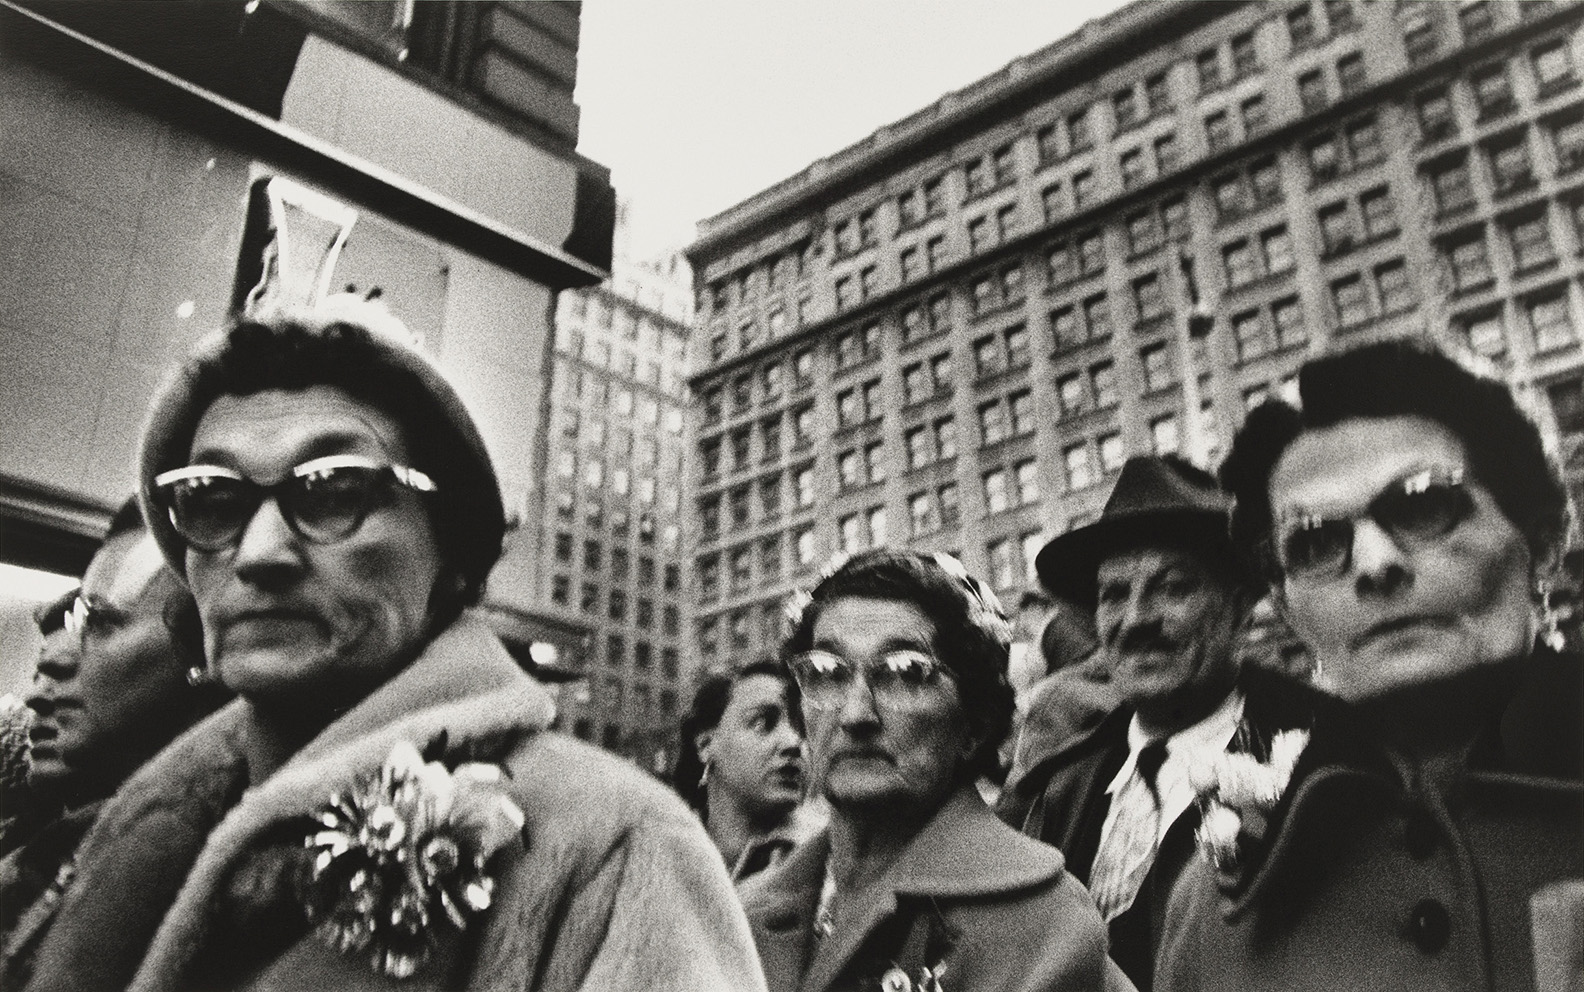 William Klein (né en 1928), Christmas Shopping, Macy's, New York.© William Klein, collection Maison Européenne de la Photographie, Paris